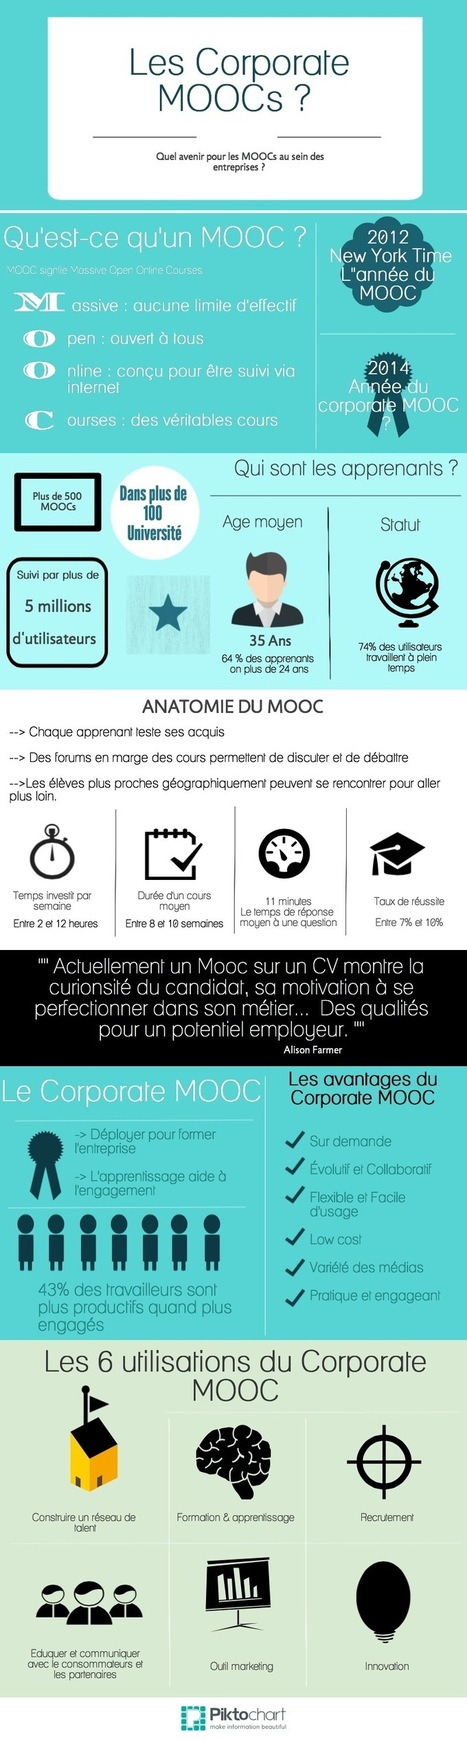 [Infographie] Les Corporate MOOCs | e-learning | Scoop.it